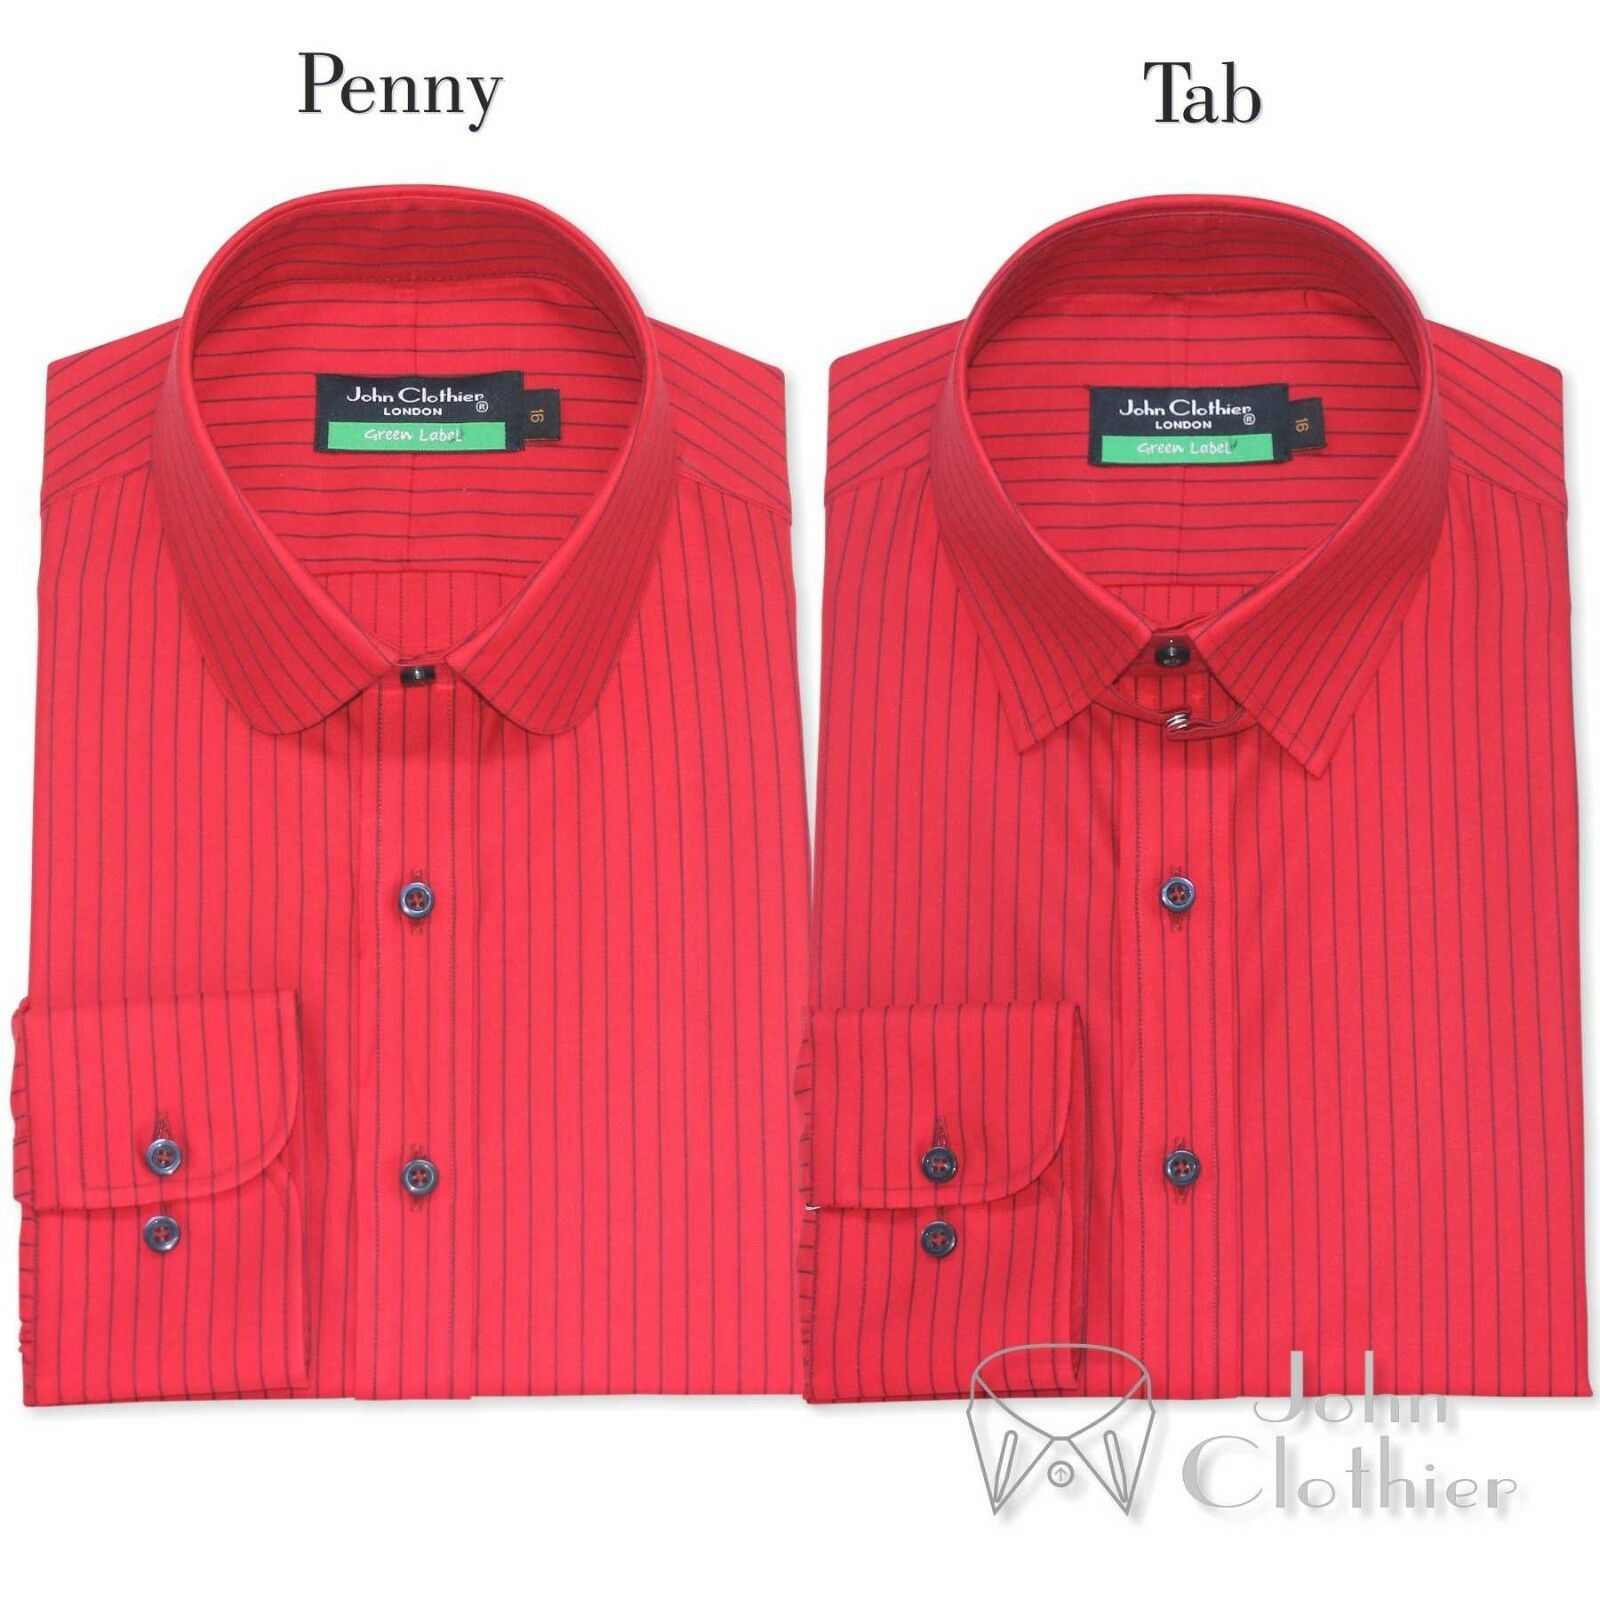 Herren Cotton shirt Penny collar Tab collar ROT with Blau stripes Club Loop Gents